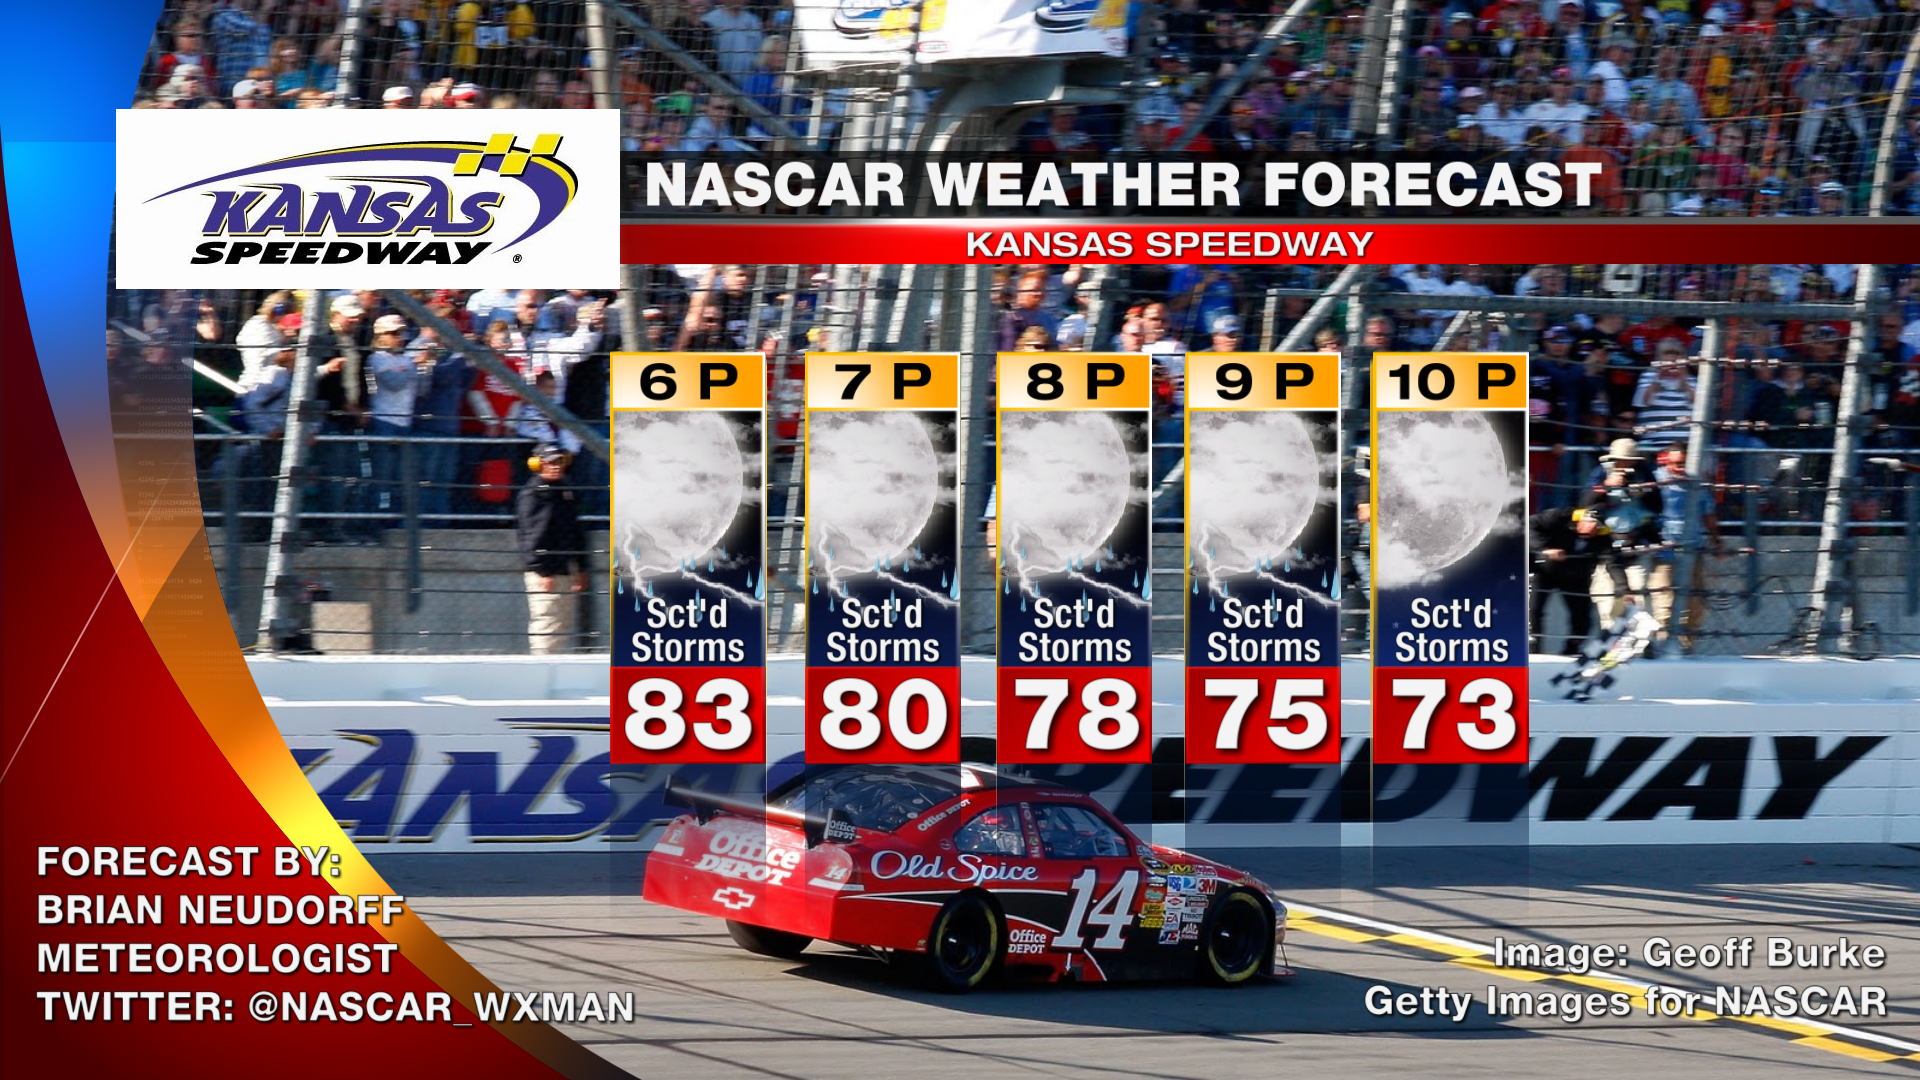 2014 NASCAR at Kansas Speedway race day weather: Scattered storms in the forecast. It's ...